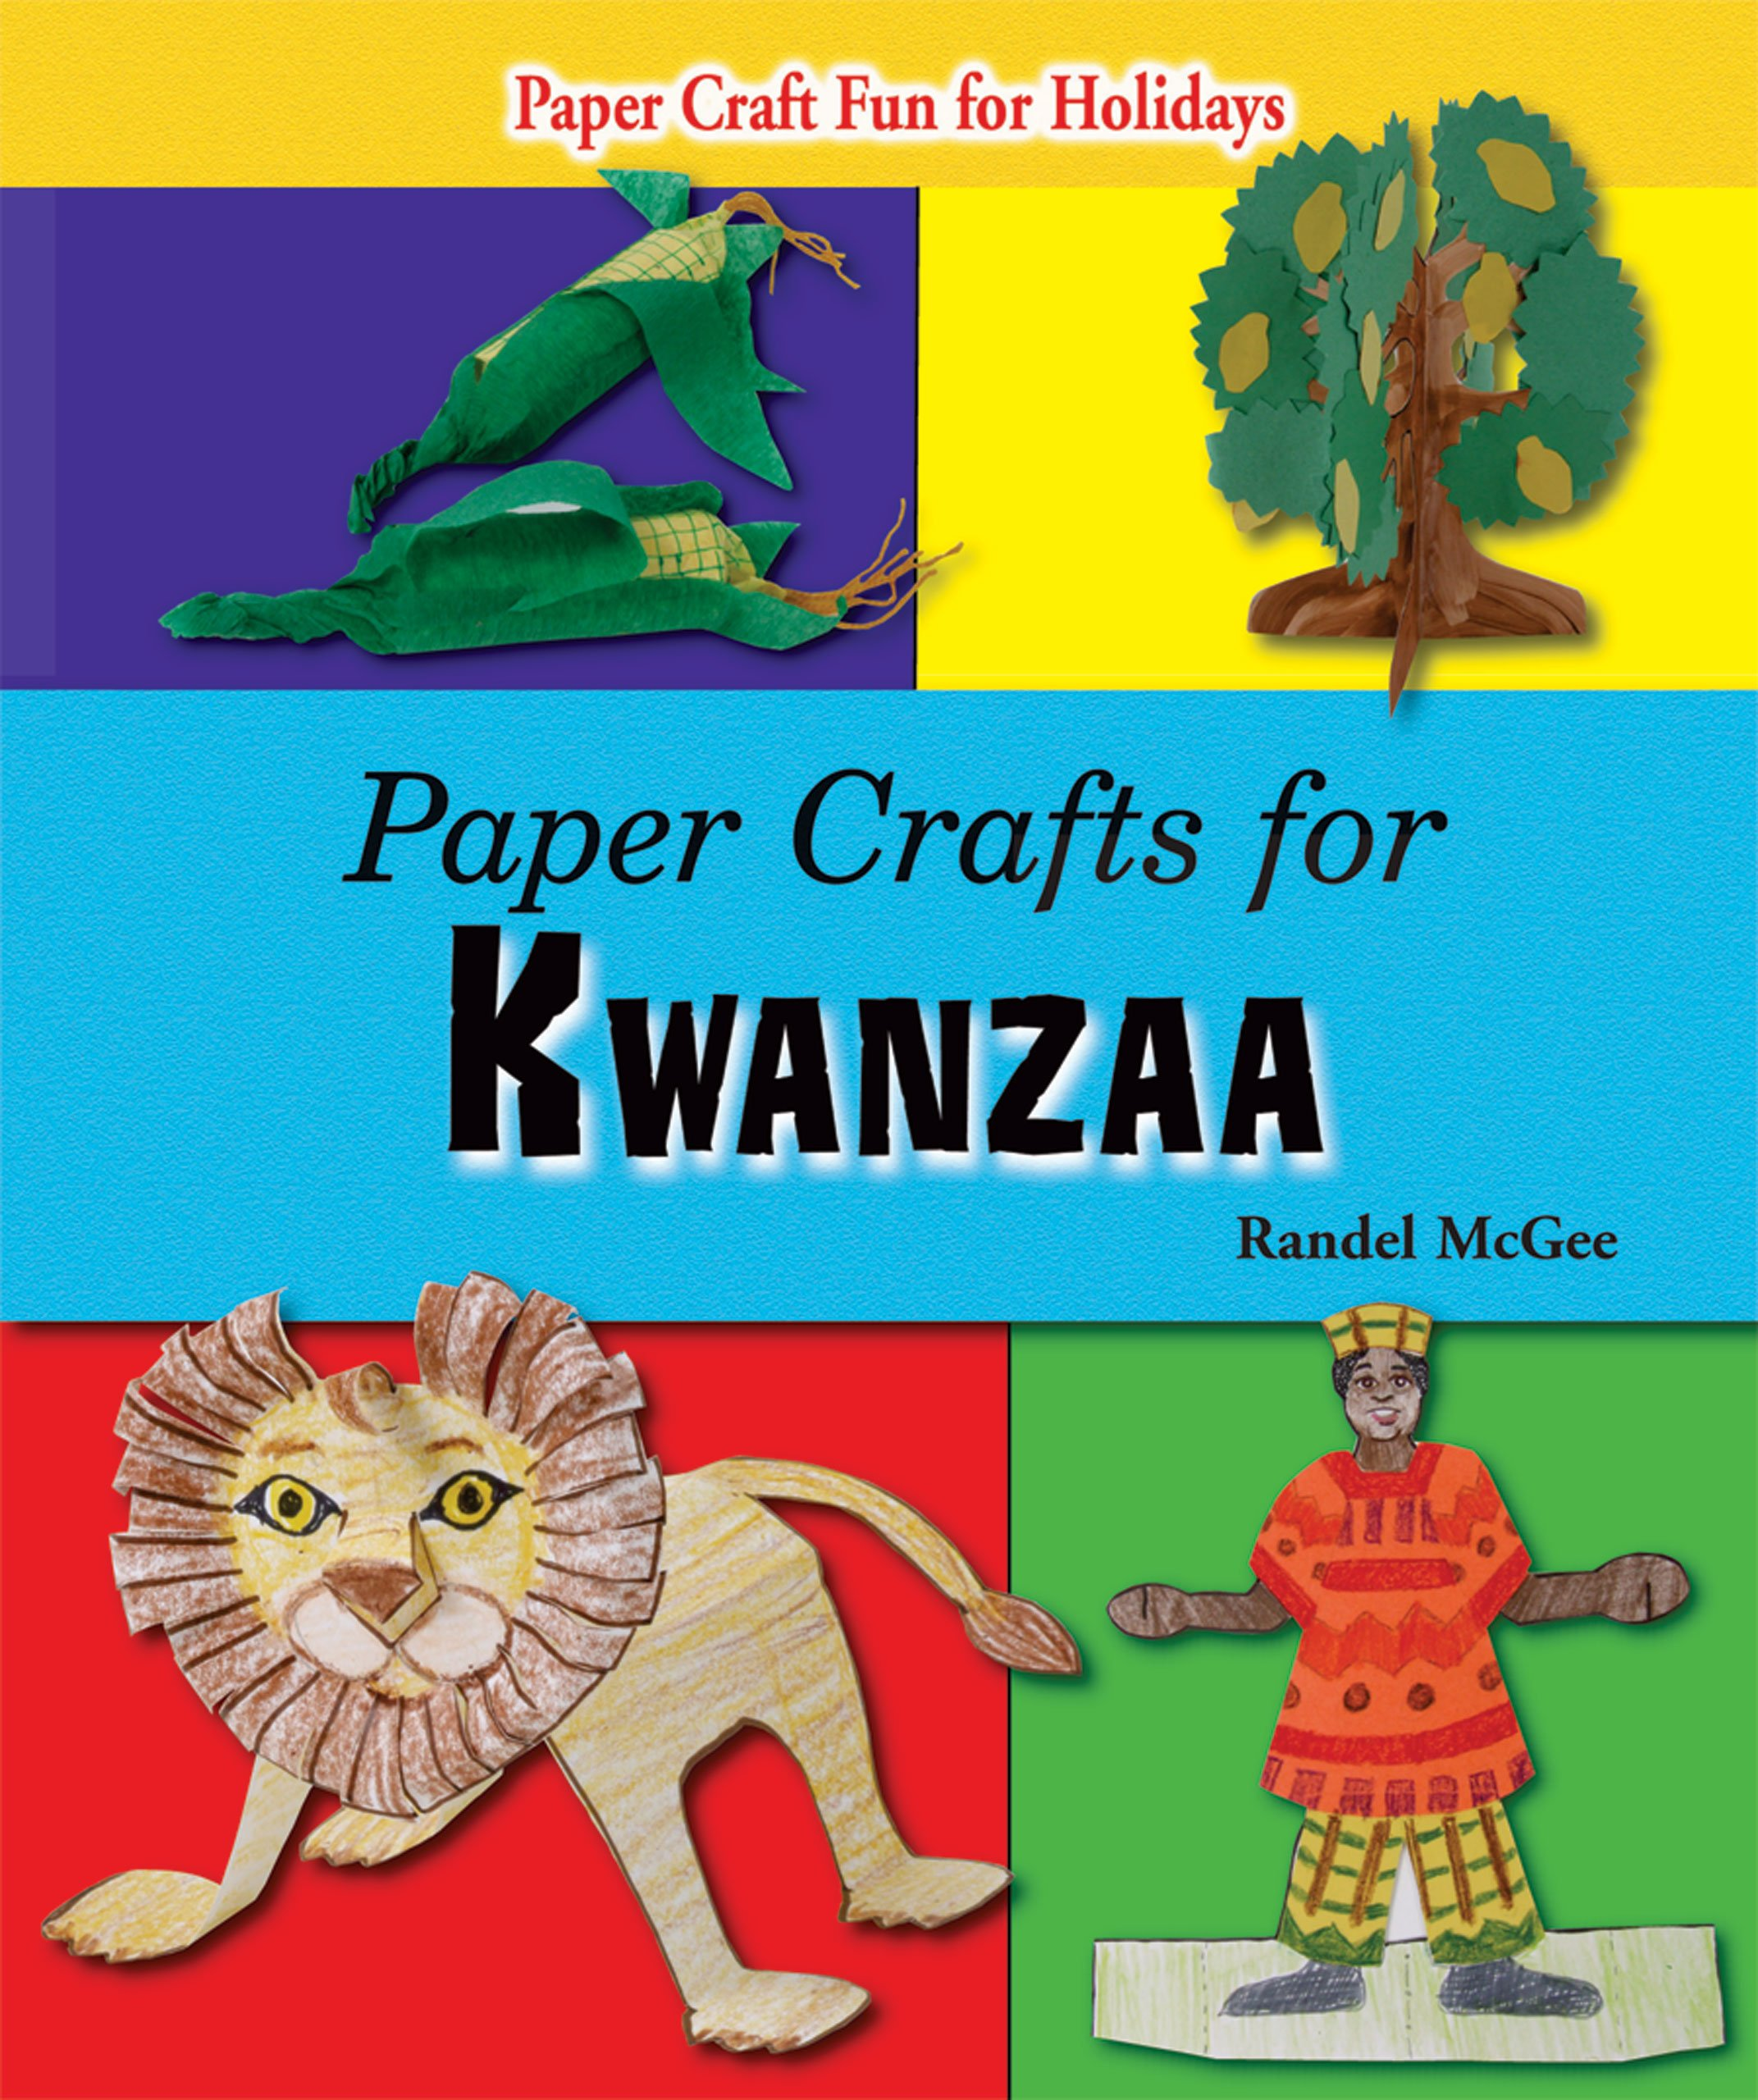 Paper Crafts for Kwanzaa (Paper Craft Fun for Holidays) by Enslow Publishers, Inc. (Image #1)